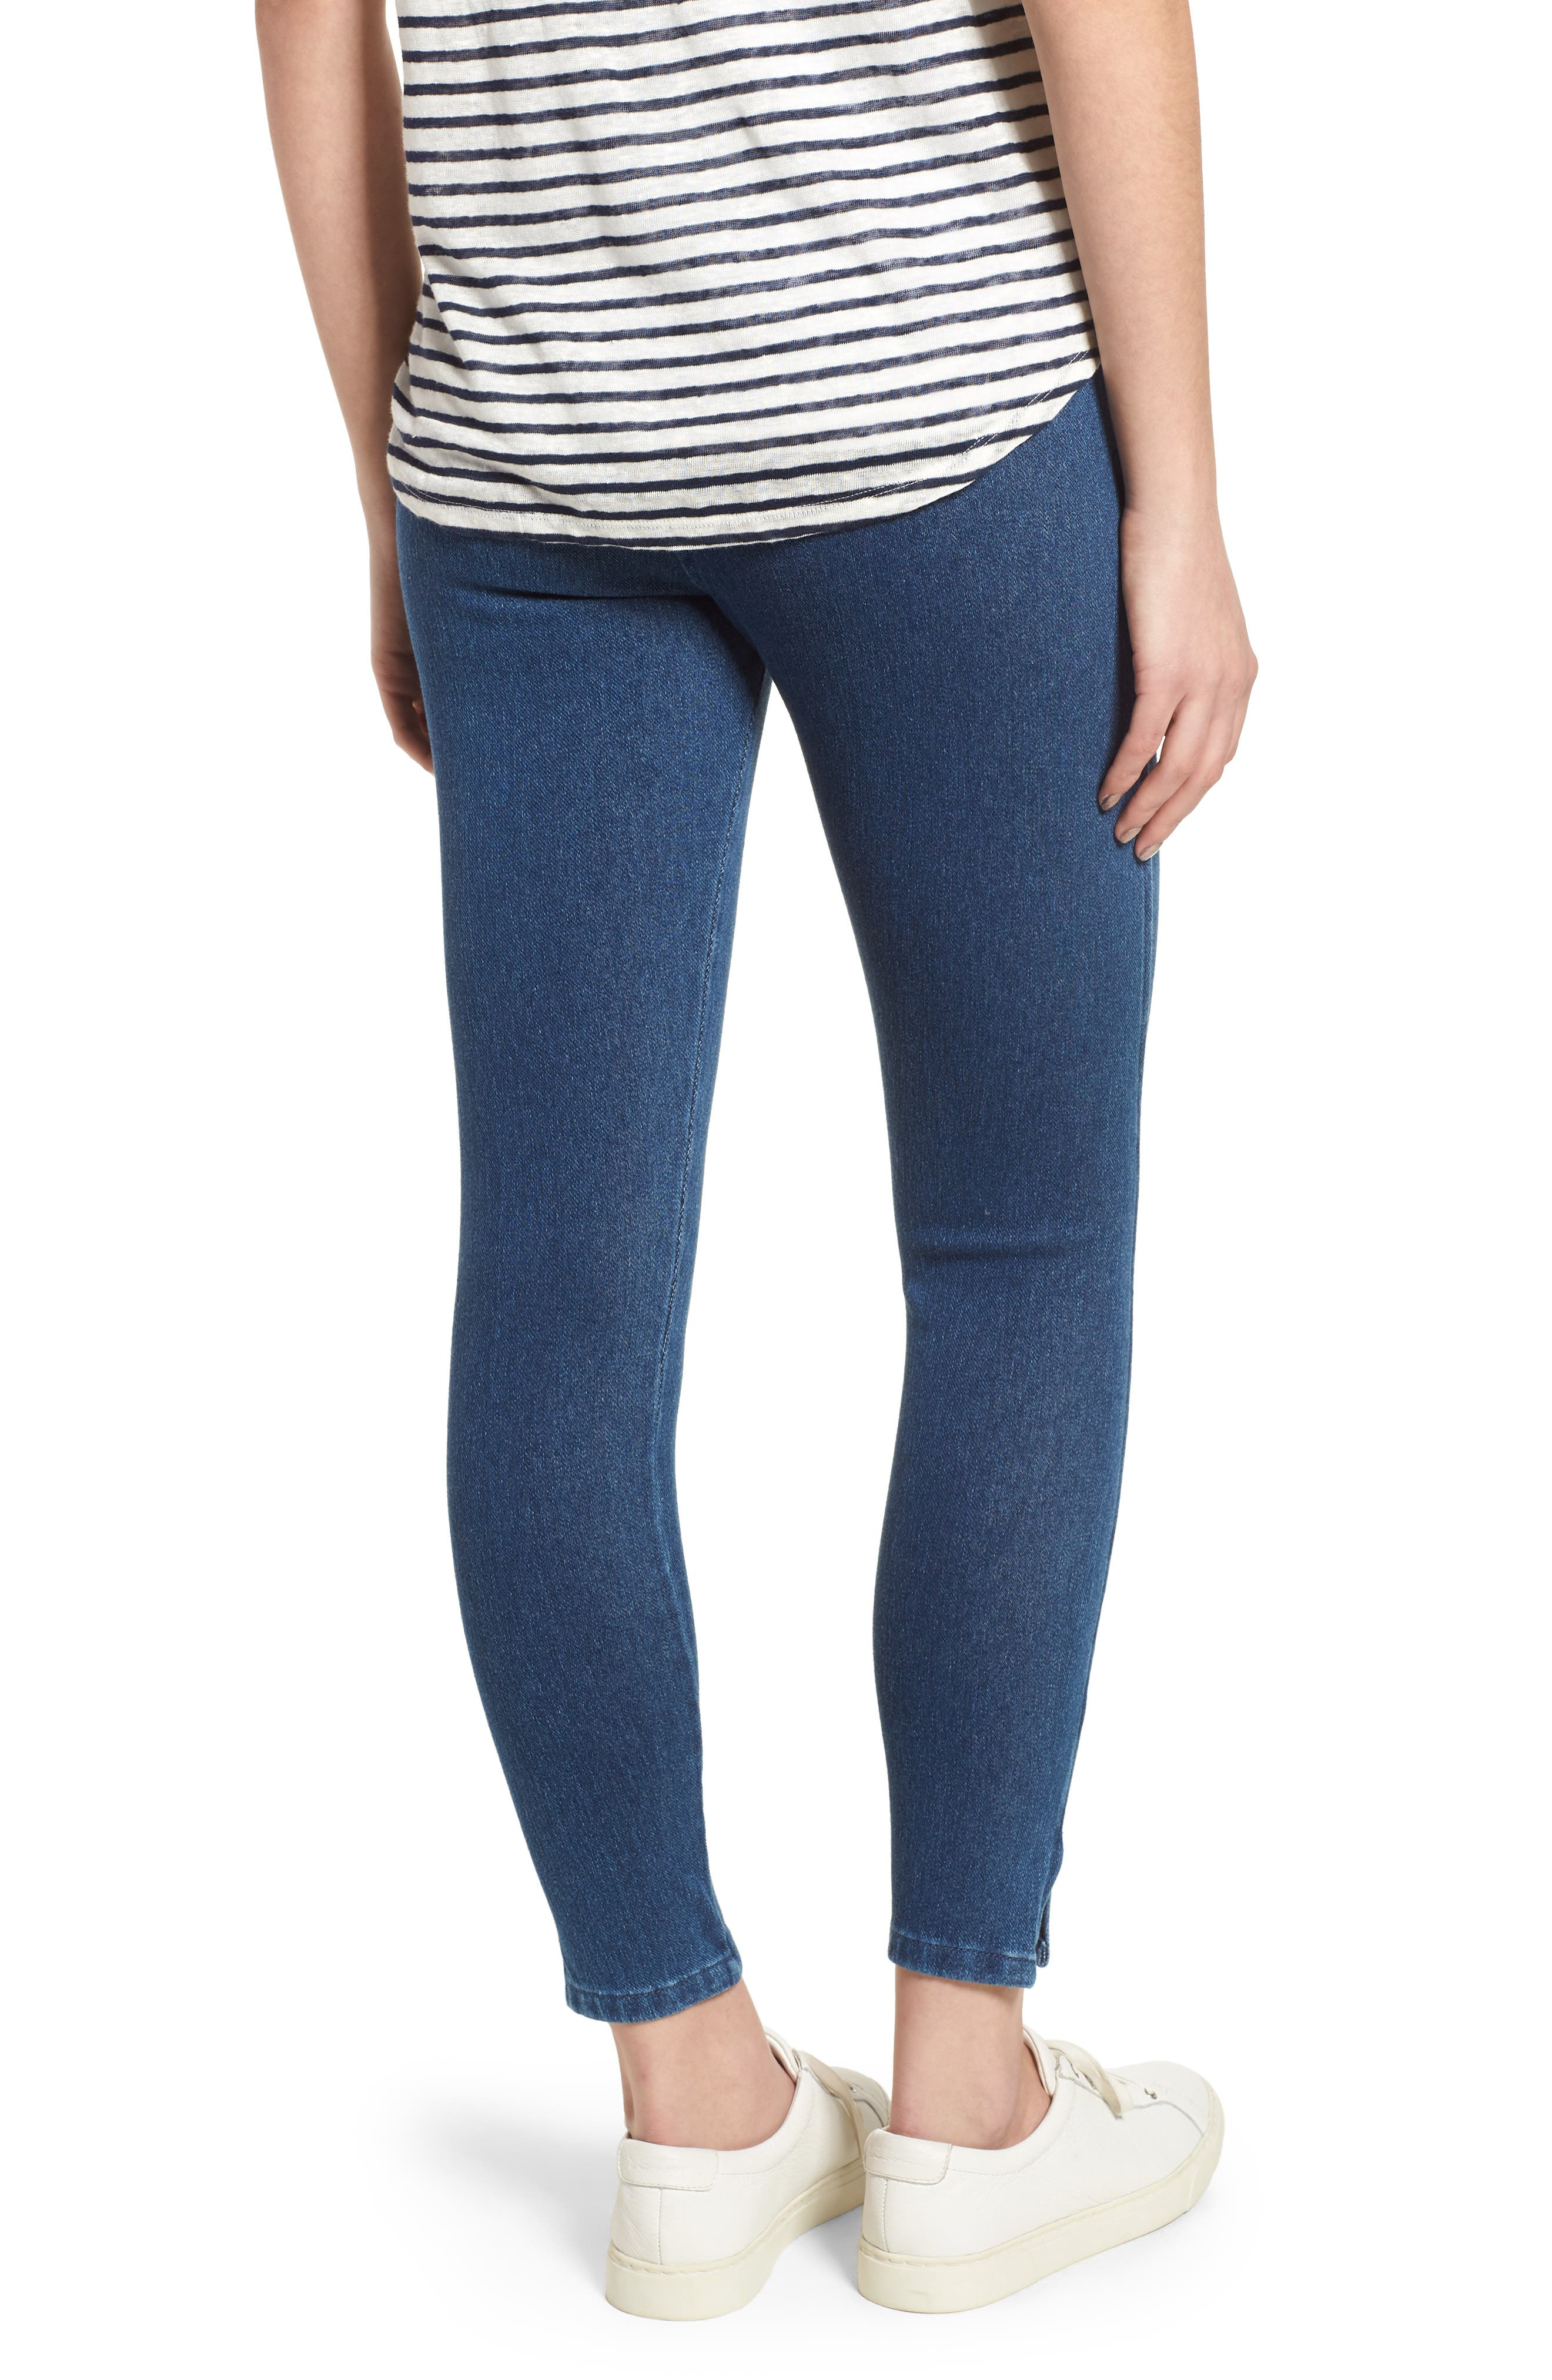 Cooper High Waist Denim Leggings,                             Alternate thumbnail 2, color,                             400